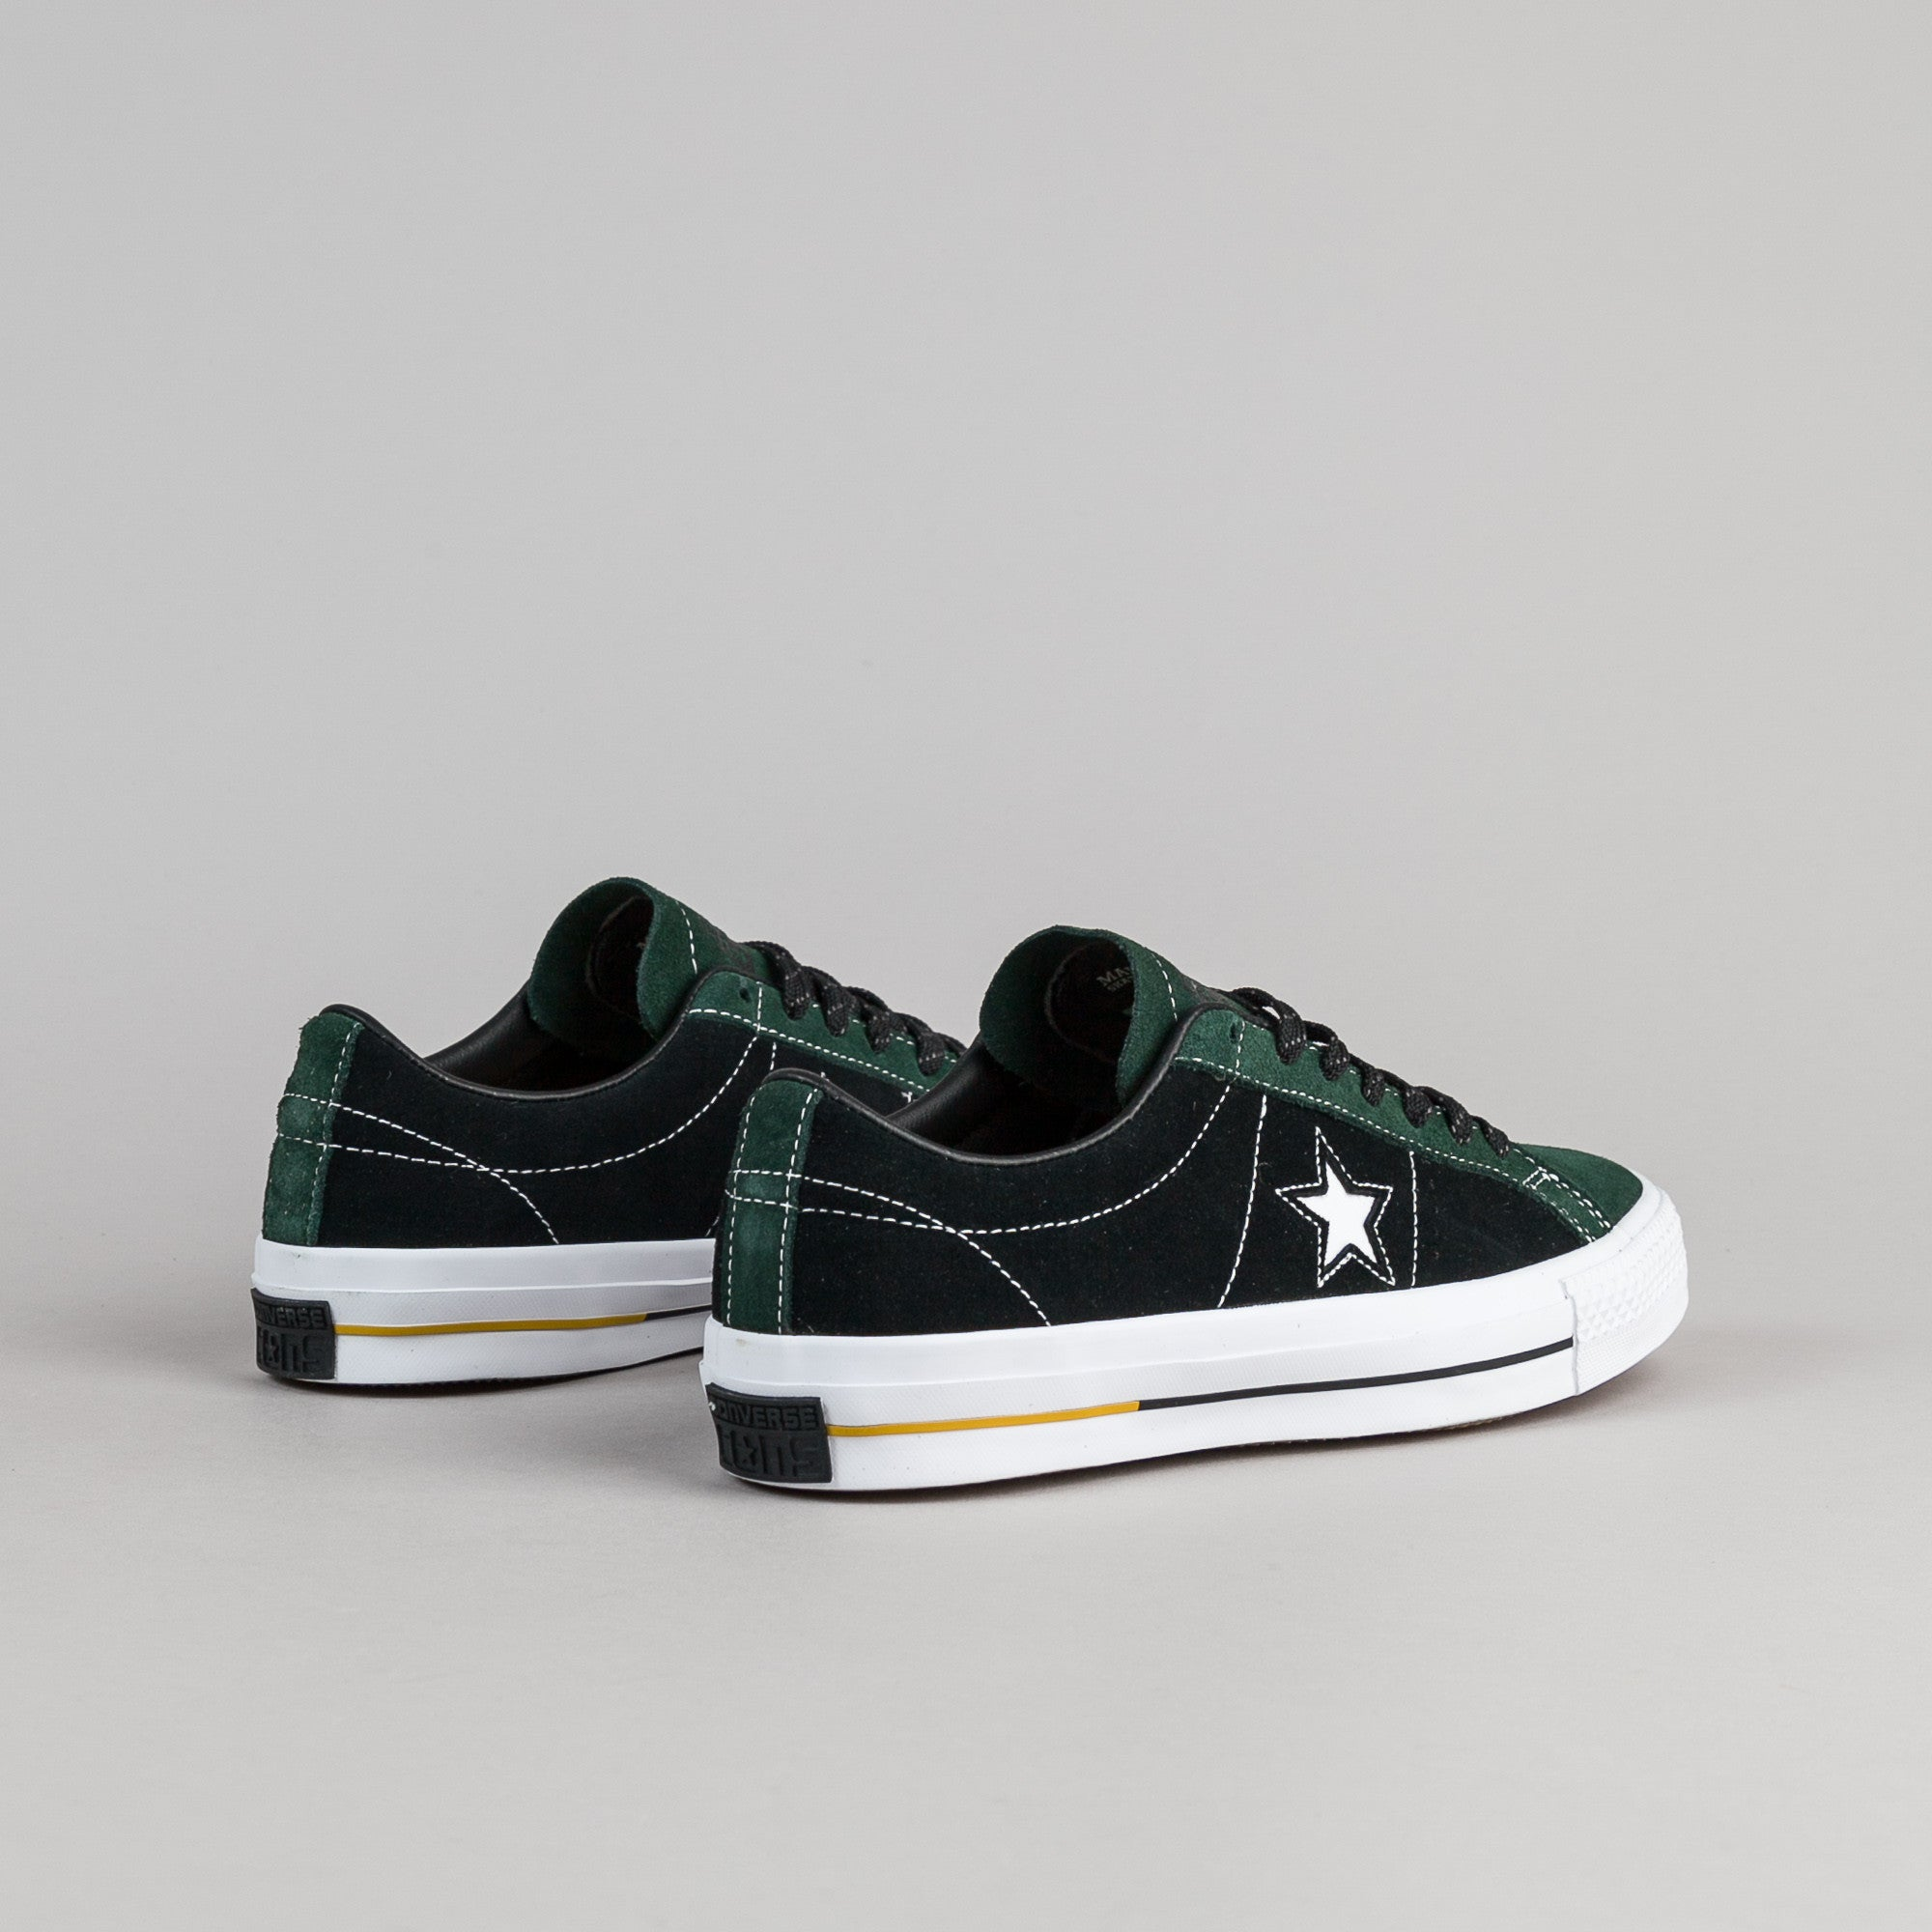 Converse One Star Pro Suede OX Shoes - Deep Emerald / Black